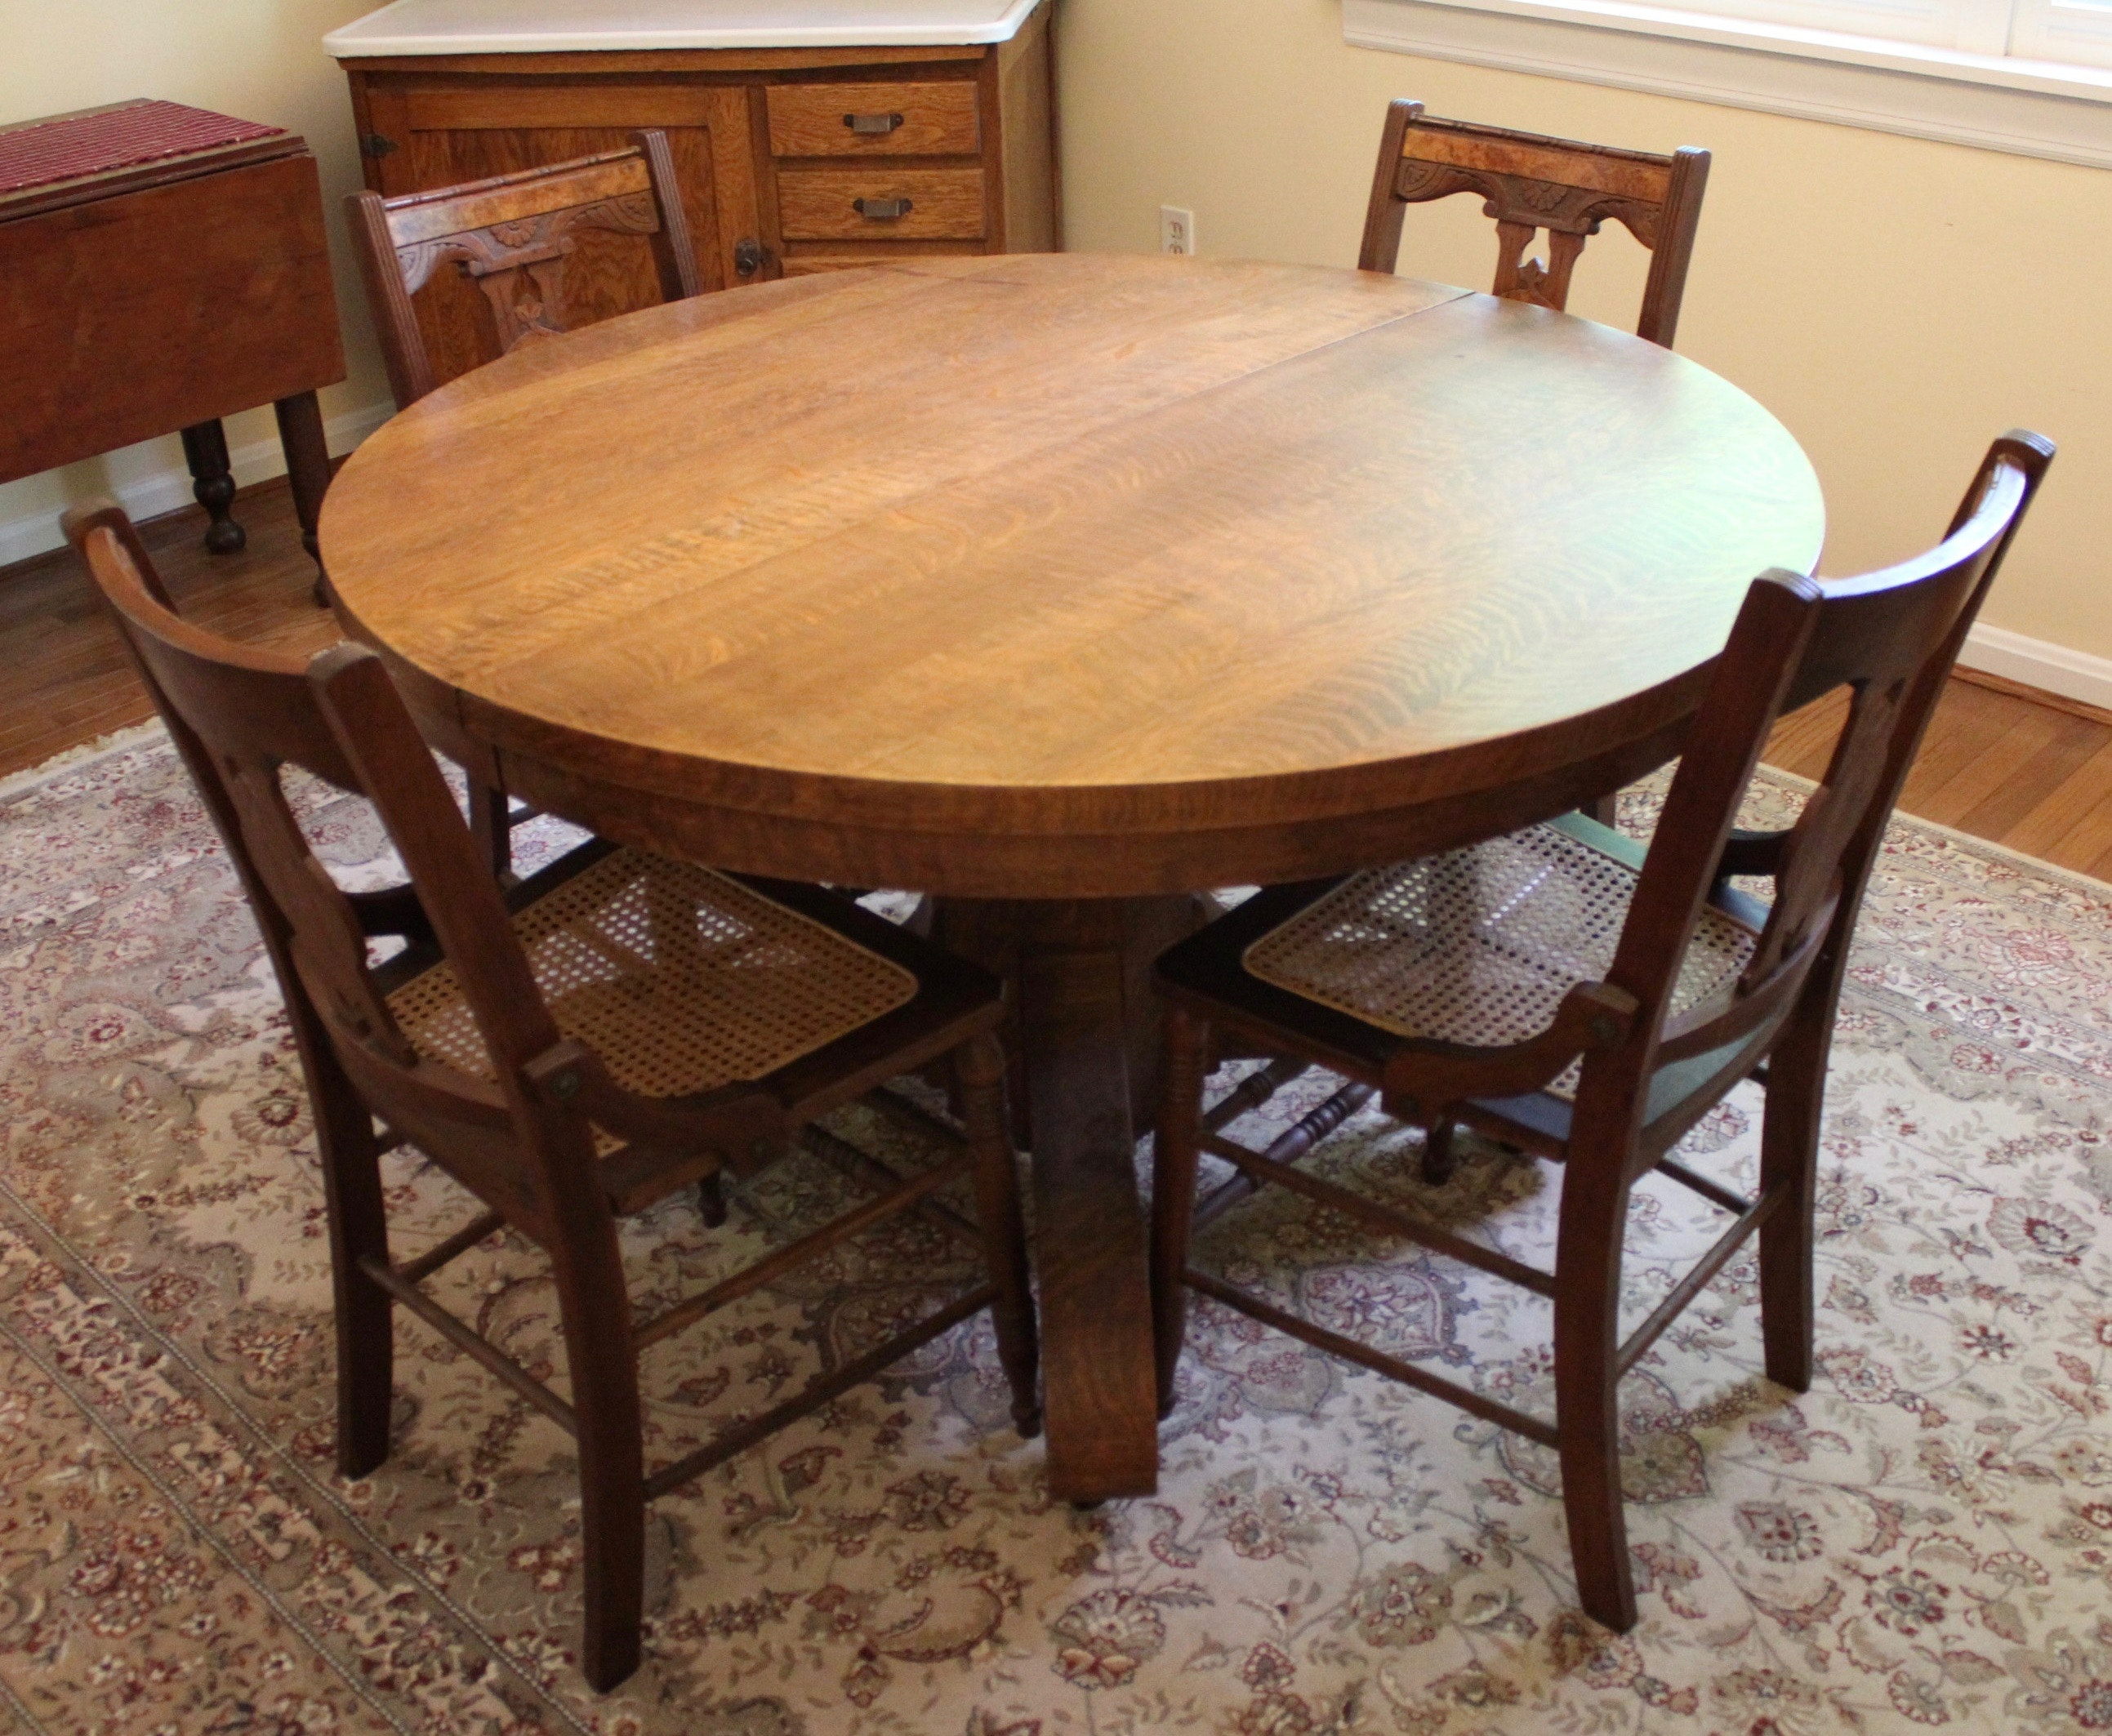 Antique Oak Dining Table and Chairs EBTH